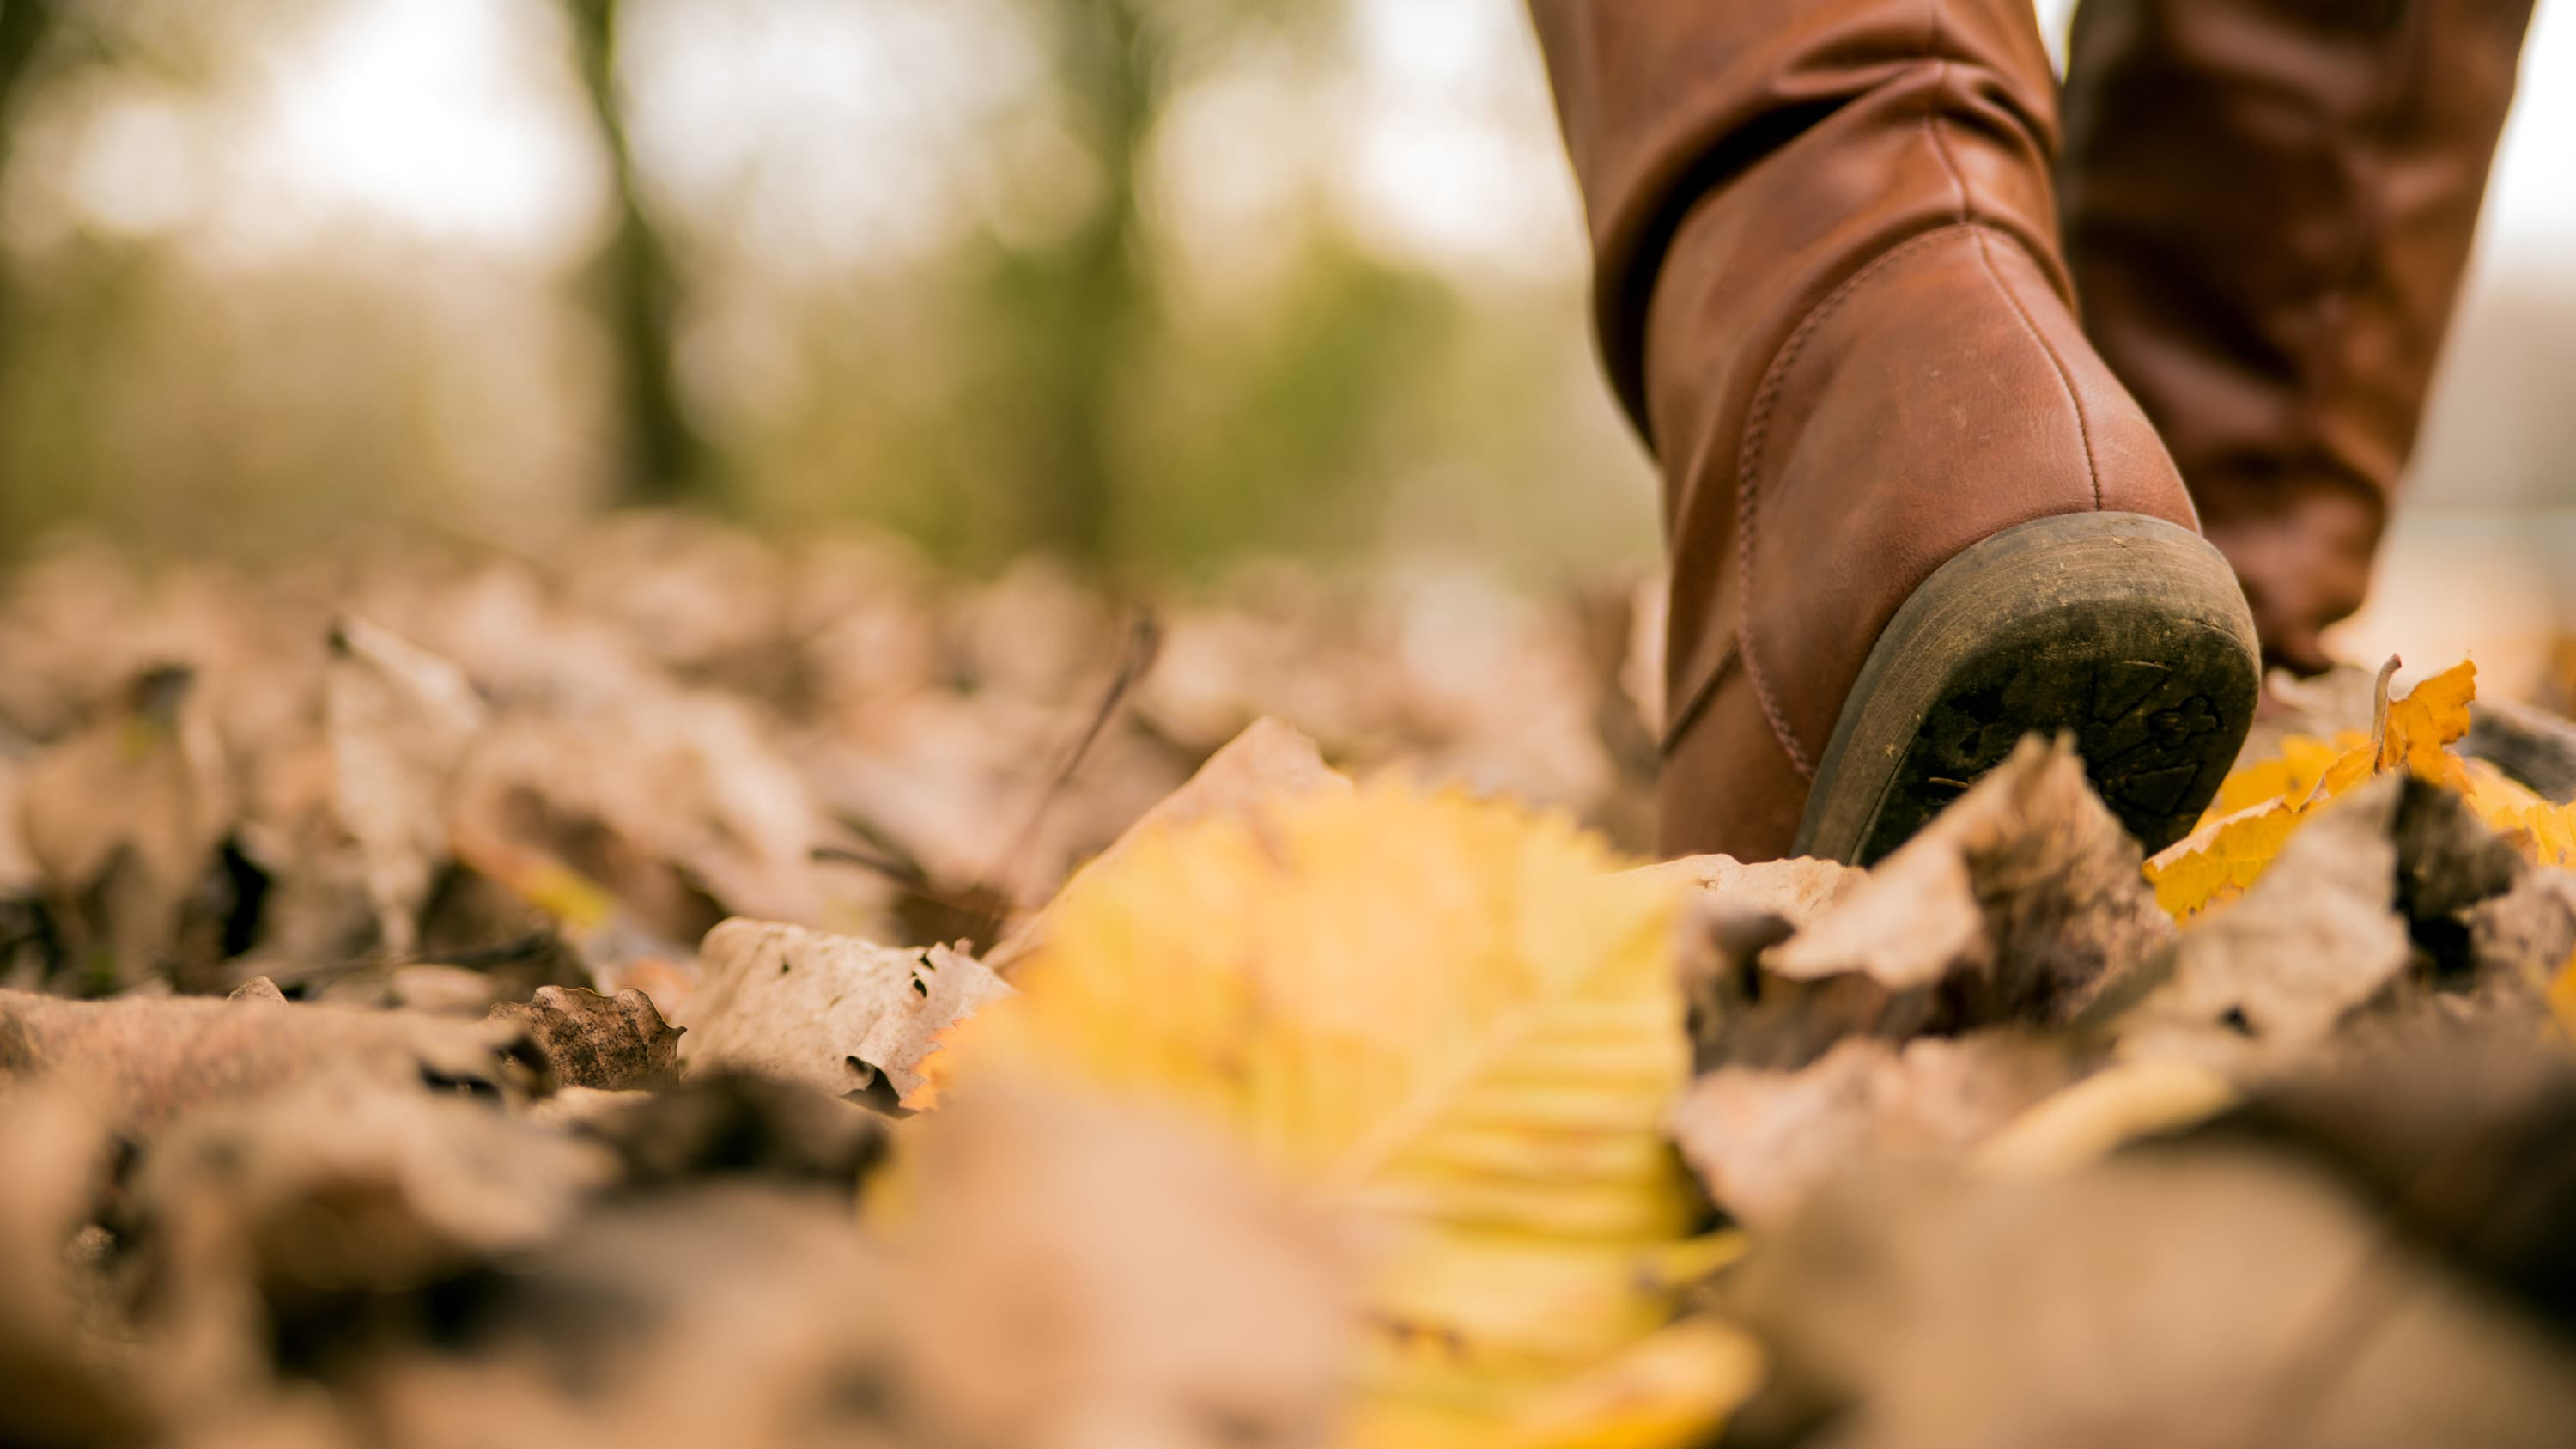 A woman's brown boot in leaves where it's possible to pick up a tick that may carry Lyme disease.